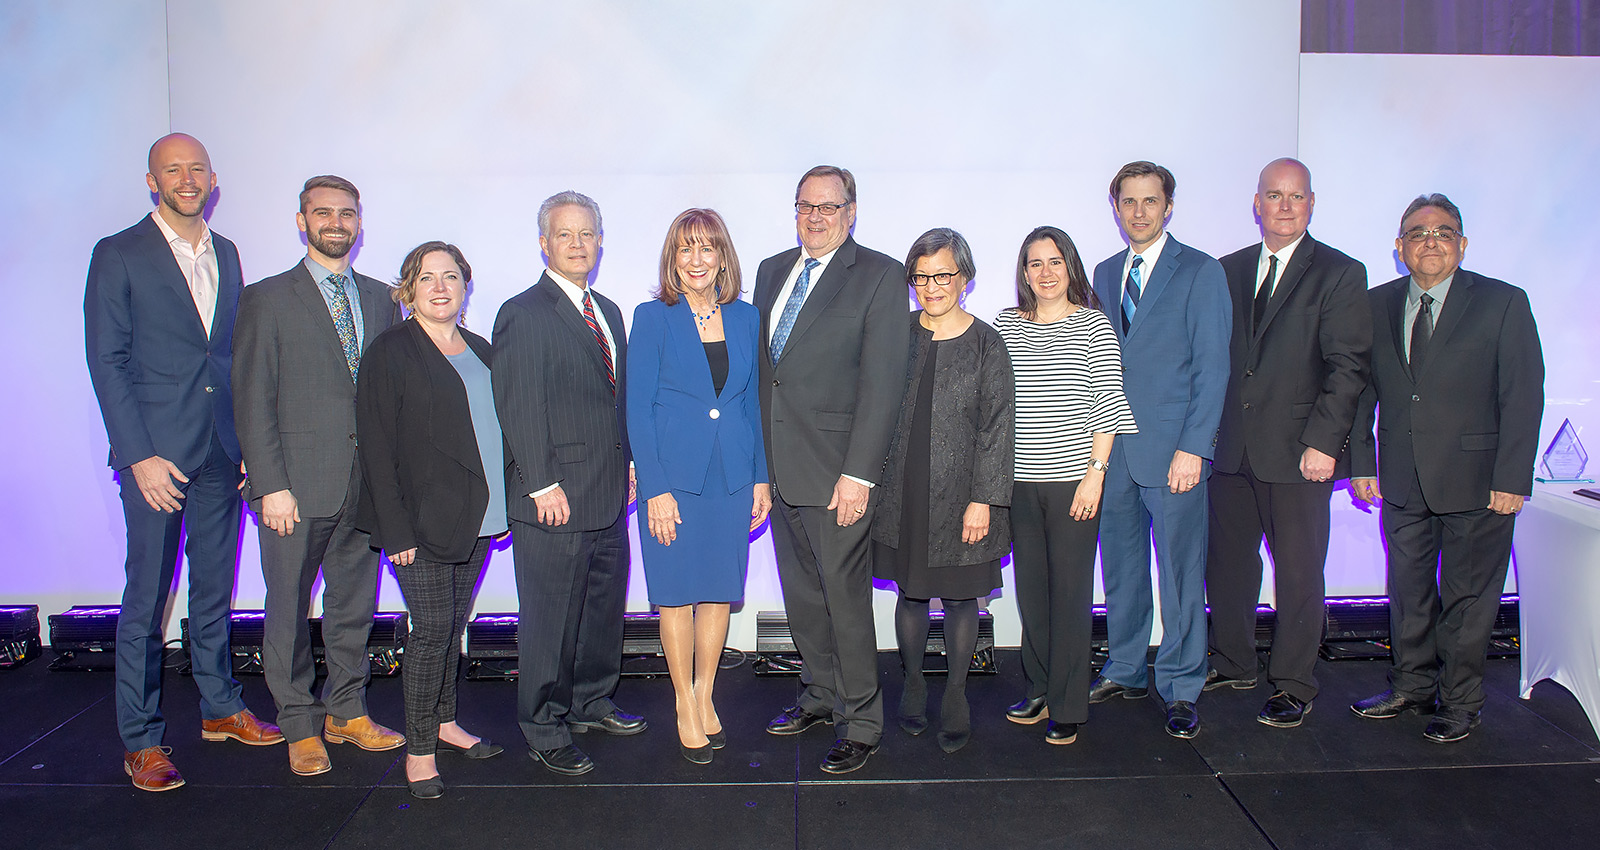 Louise McCarthy, President and CEO of the     Community Clinic Association of Los Angeles County, was inducted into NACHC's Grassroots Hall of Fame